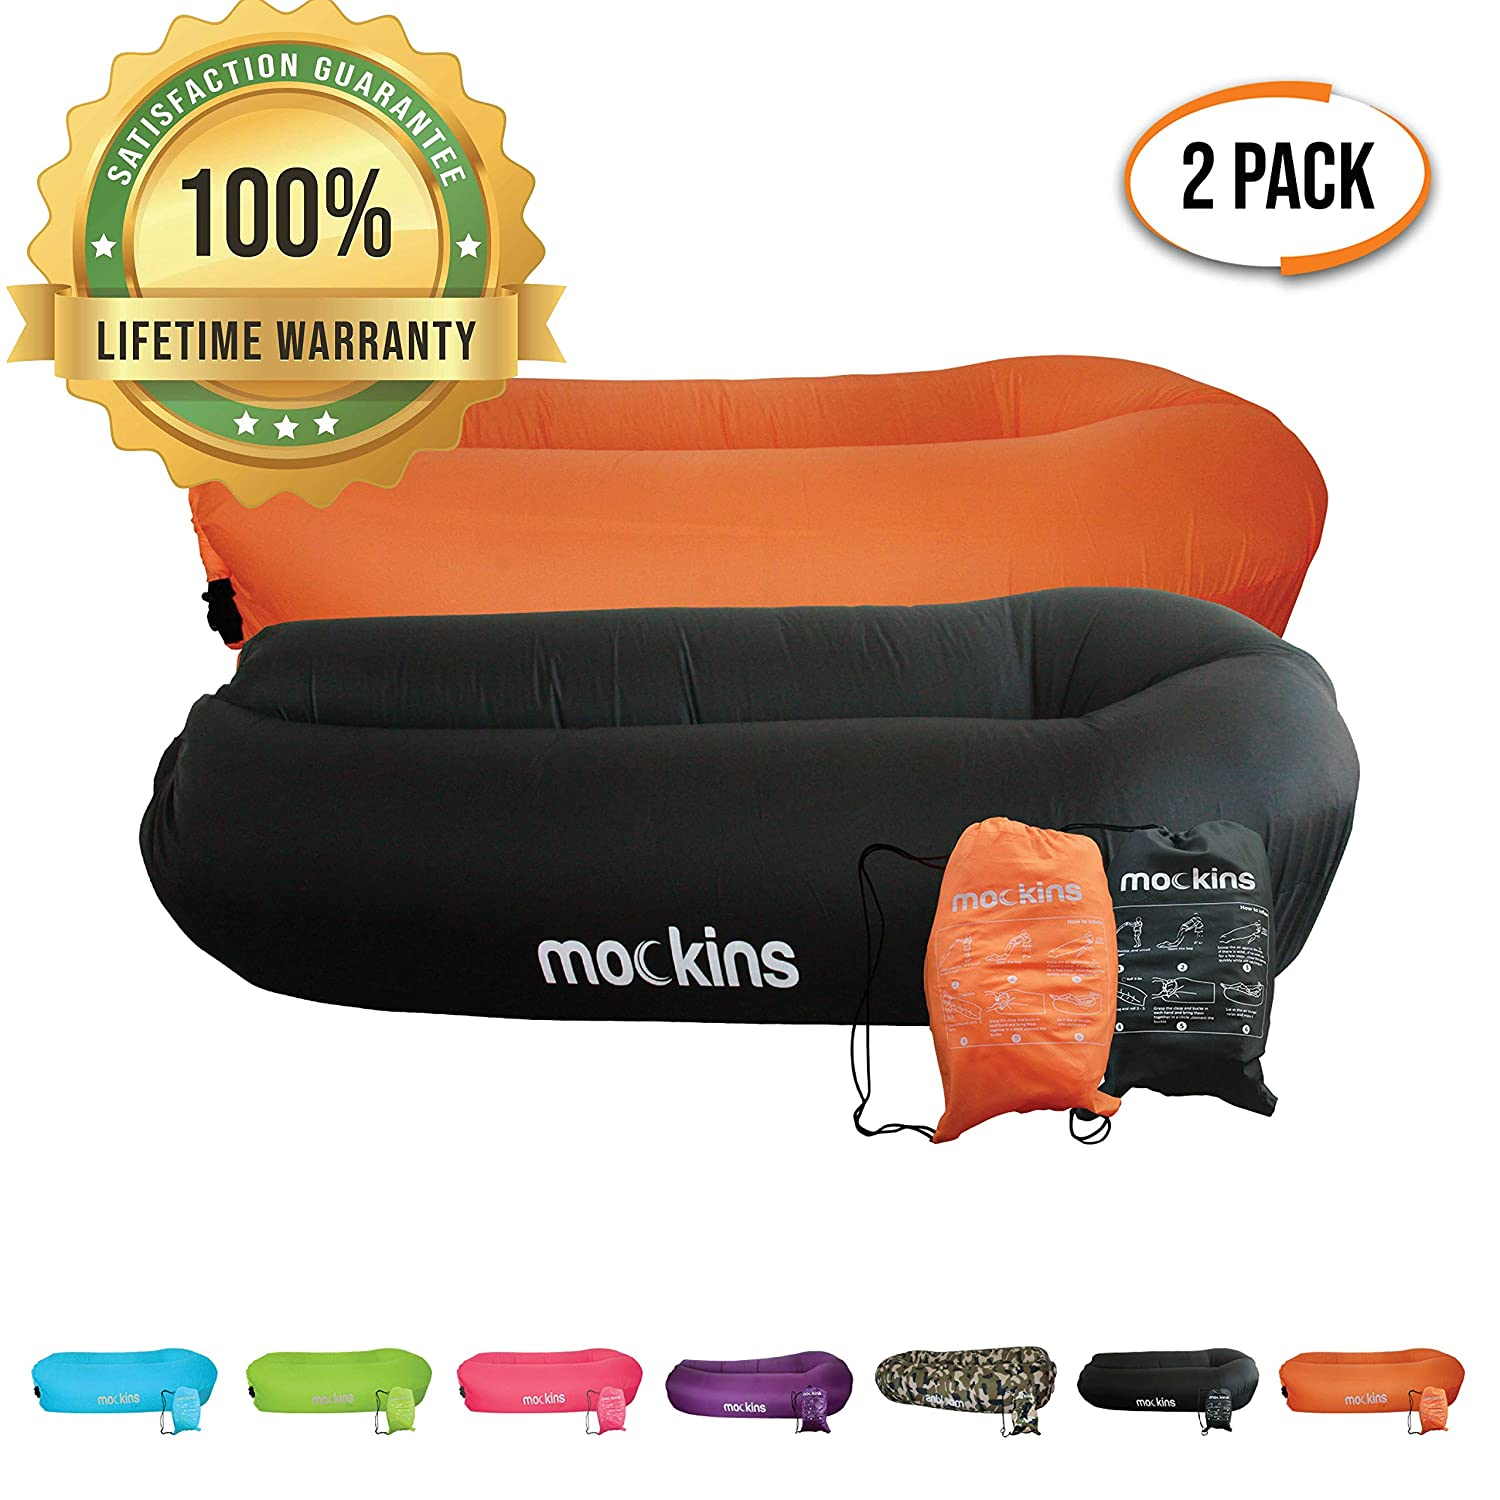 Mockins 2 Pack Black Orange Inflatable Lounger Hangout Sofa Bed with Travel Bag Pouch The Portable Inflatable Couch Air Lounger is Perfect for Music Festivals Or Camping Accessories Inflatable Hammock